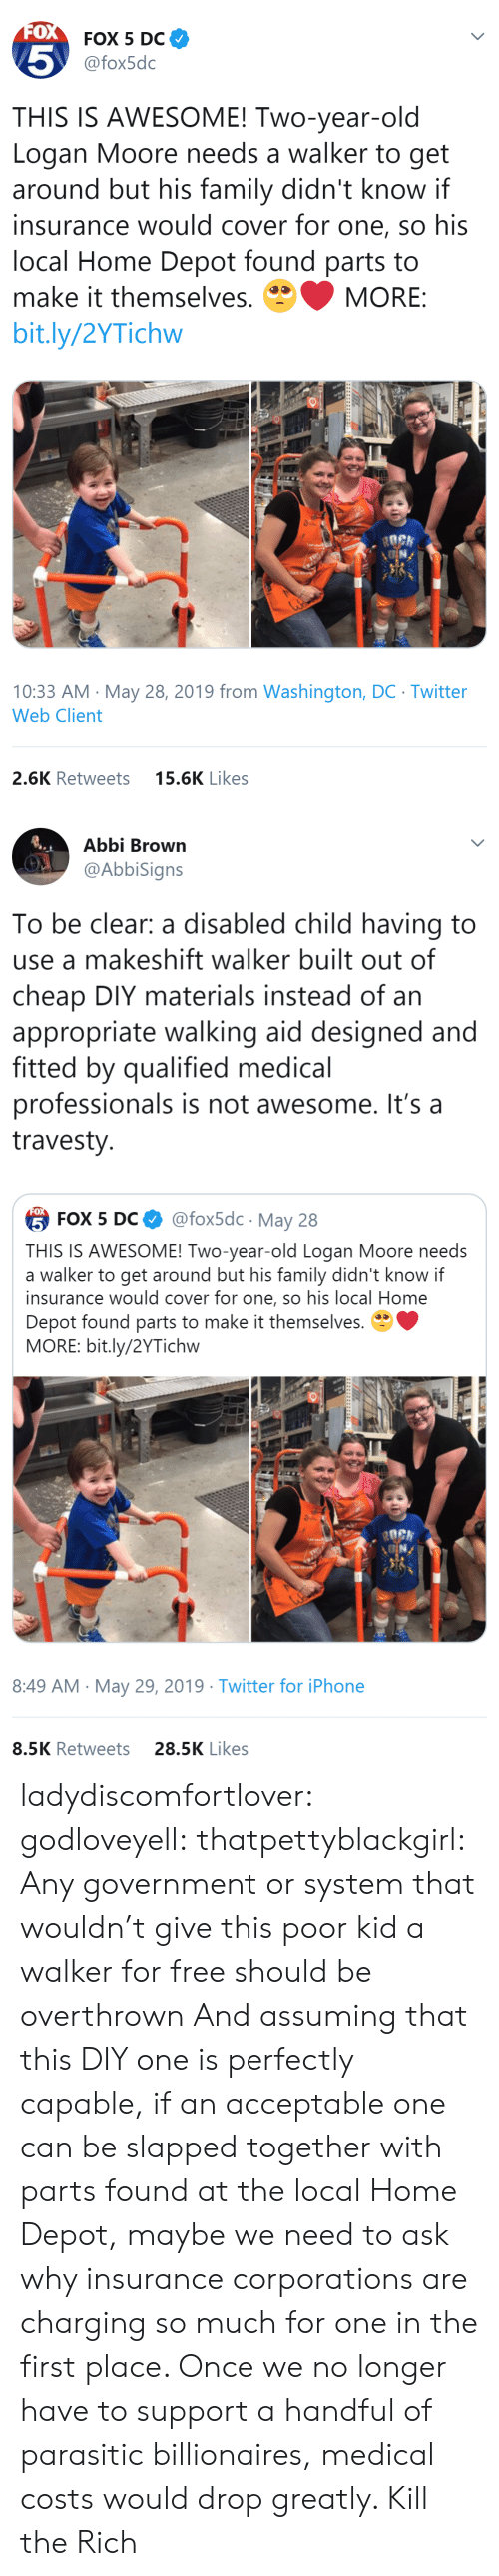 Moore: FOX  FOX 5 DC  5  @fox5dc  THIS IS AWESOME! Two-year-old  Logan Moore needs a walker to get  around but his family didn't know if  insurance would cover for one, so his  local Home Depot found parts to  make it themselves.  MORE:  bit.ly/2YTichw  10:33 AM May 28, 2019 from Washington, DC Twitter  Web Client  15.6K Likes  2.6K Retweets   Abbi Brown  @AbbiSigns  To be clear: a disabled child having to  use a makeshift walker built out of  cheap DIY materials instead of an  appropriate walking aid designed and  fitted by qualified medical  professionals is not awesome. It's a  travesty  FOX  @fox5dc May 28  5 FOX 5 DС  THIS IS AWESOME! Two-year-old Logan Moore needs  a walker to get around but his family didn't know if  insurance would cover for one, so his local Home  Depot found parts to make it themselves.  MORE: bit.ly/2YTichw  8:49 AM May 29, 2019 Twitter for iPhone  28.5K Likes  8.5K Retweets ladydiscomfortlover: godloveyell:  thatpettyblackgirl:  Any government or system that wouldn't give this poor kid a walker for free should be overthrown   And assuming that this DIY one is perfectly capable, if an acceptable one can be slapped together with parts found at the local Home Depot, maybe we need to ask why insurance corporations are charging so much for one in the first place.  Once we no longer have to support a handful of parasitic billionaires, medical costs would drop greatly.    Kill the Rich